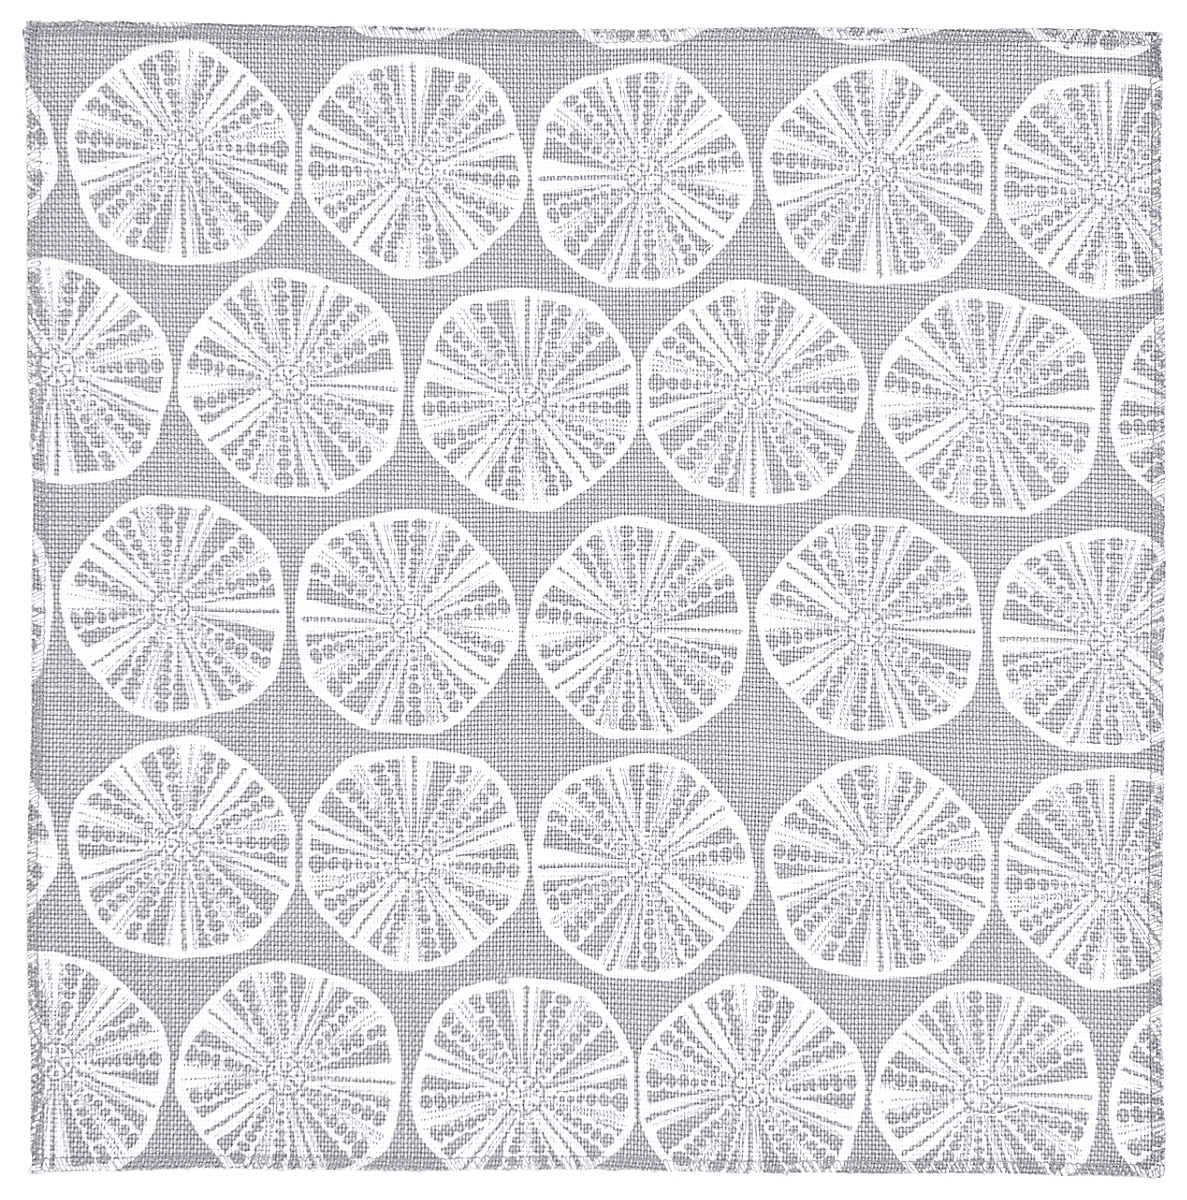 Sea Biscuit: Oyster (fabric yardage)